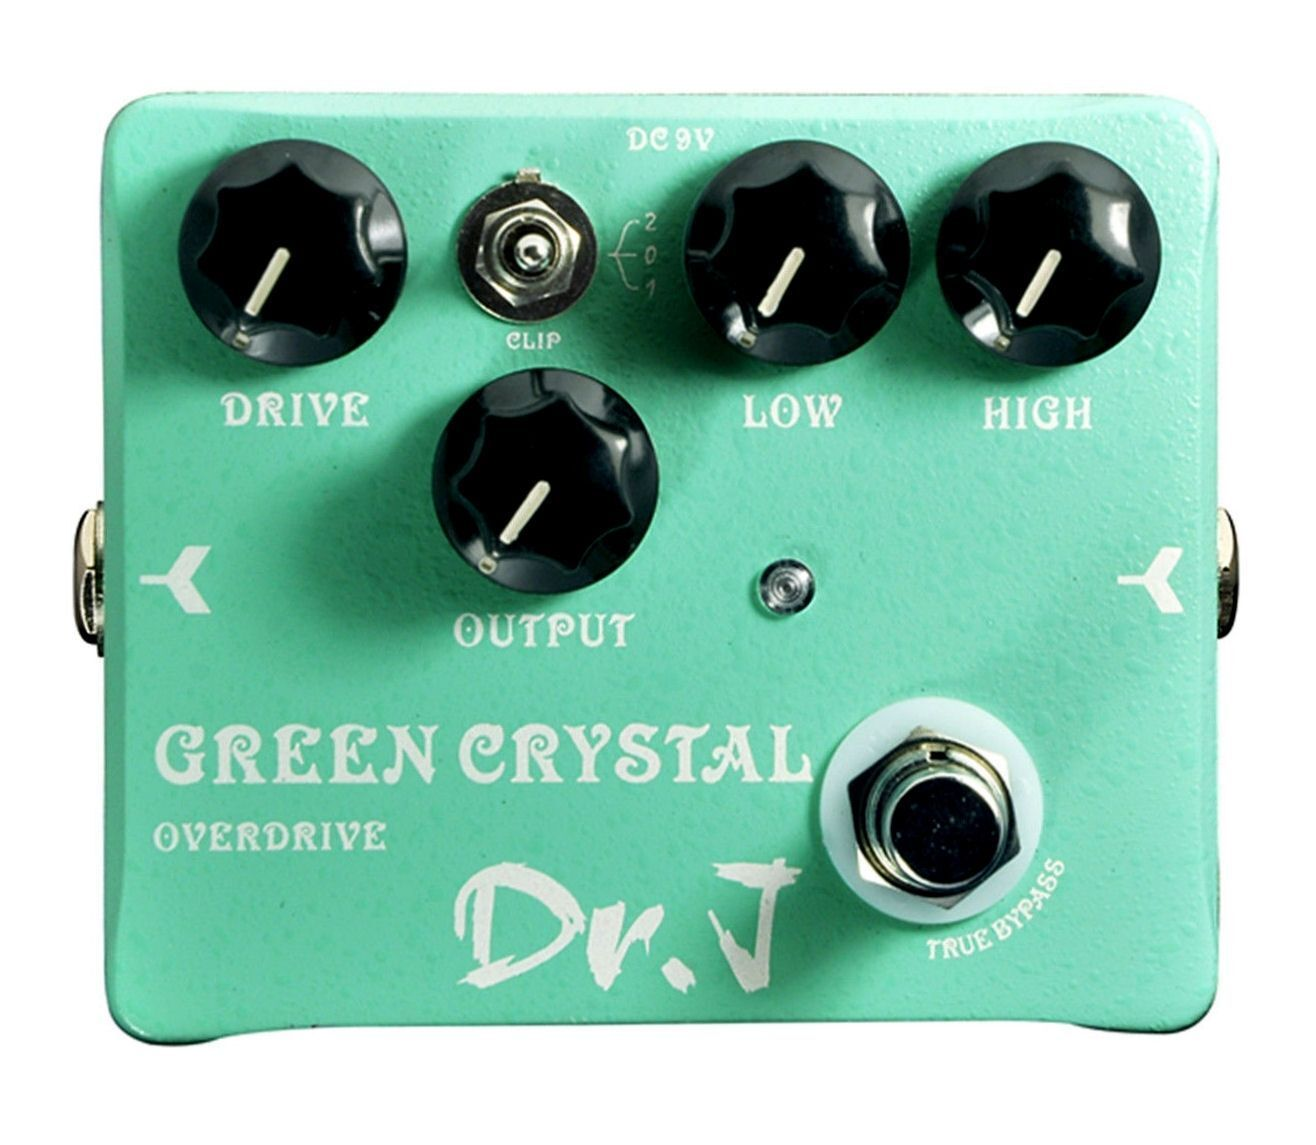 NEW DR. J D50 GREEN CRYSTAL Overdrive Pedall  FREE Shipping  US SELLER